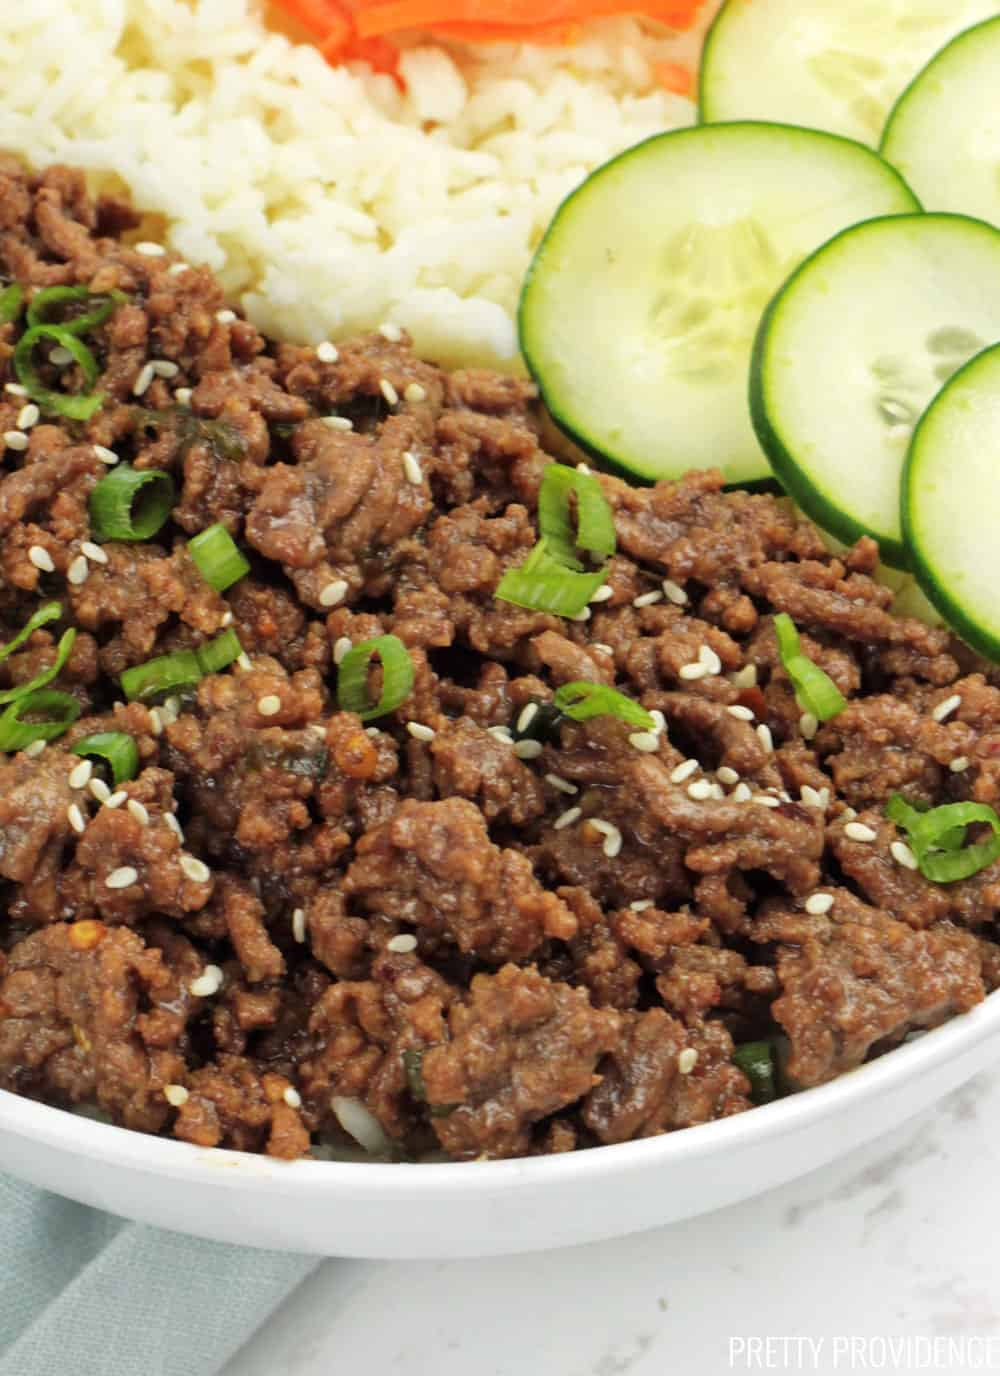 Korean Ground Beef and Rice bowl close-up with sliced cucumbers on top.